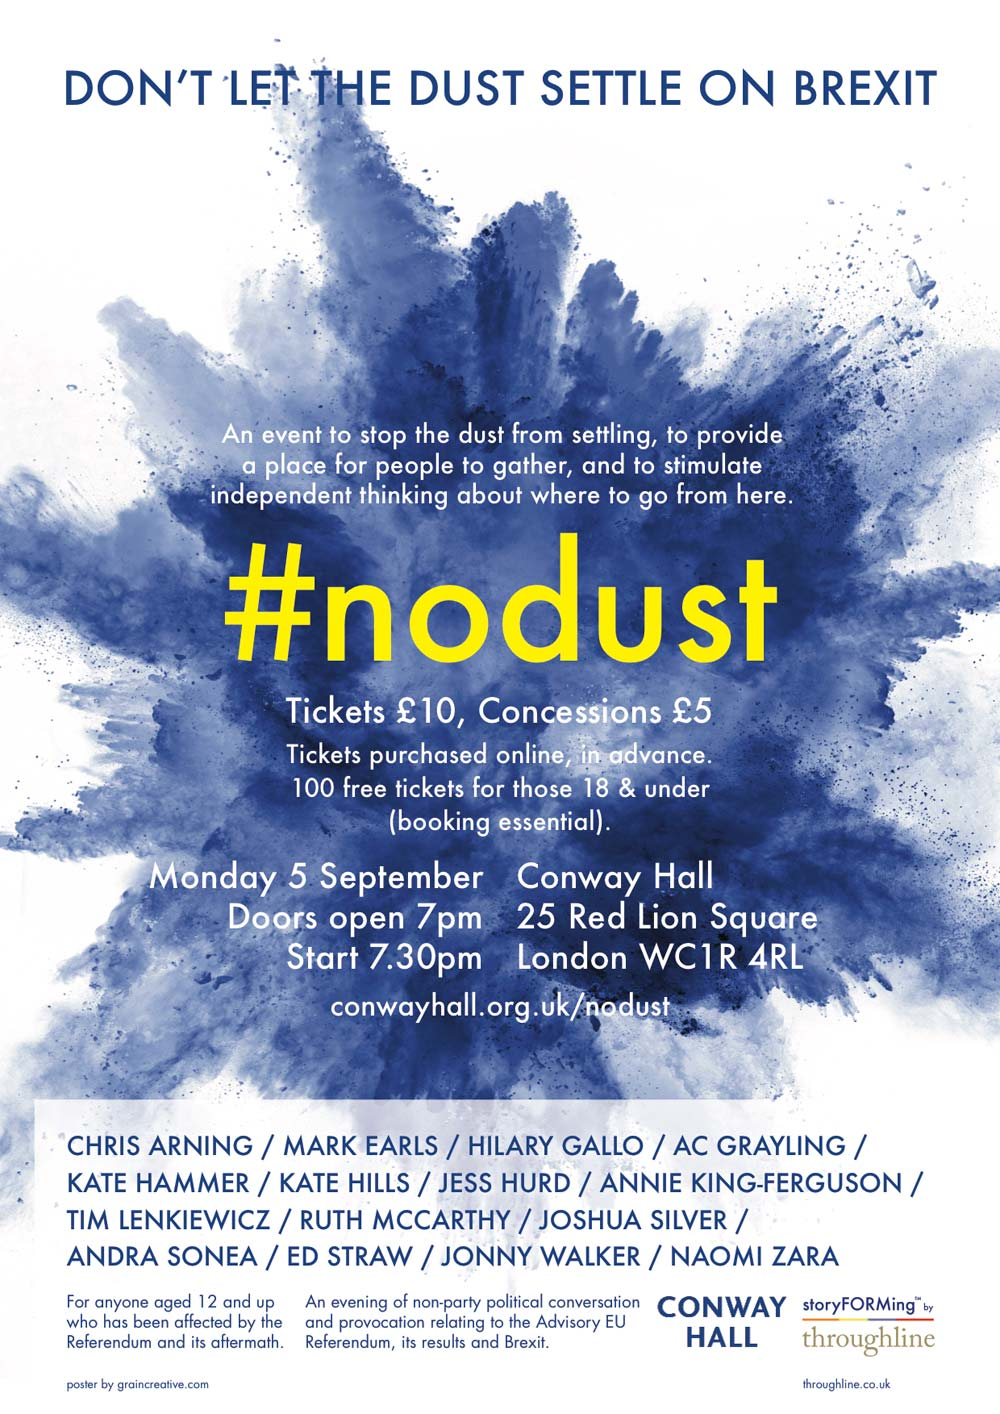 Post for #NoDust on Brexit at Conway Hall with blue cloud of dust being dispersed and list of speakers and artists contributing